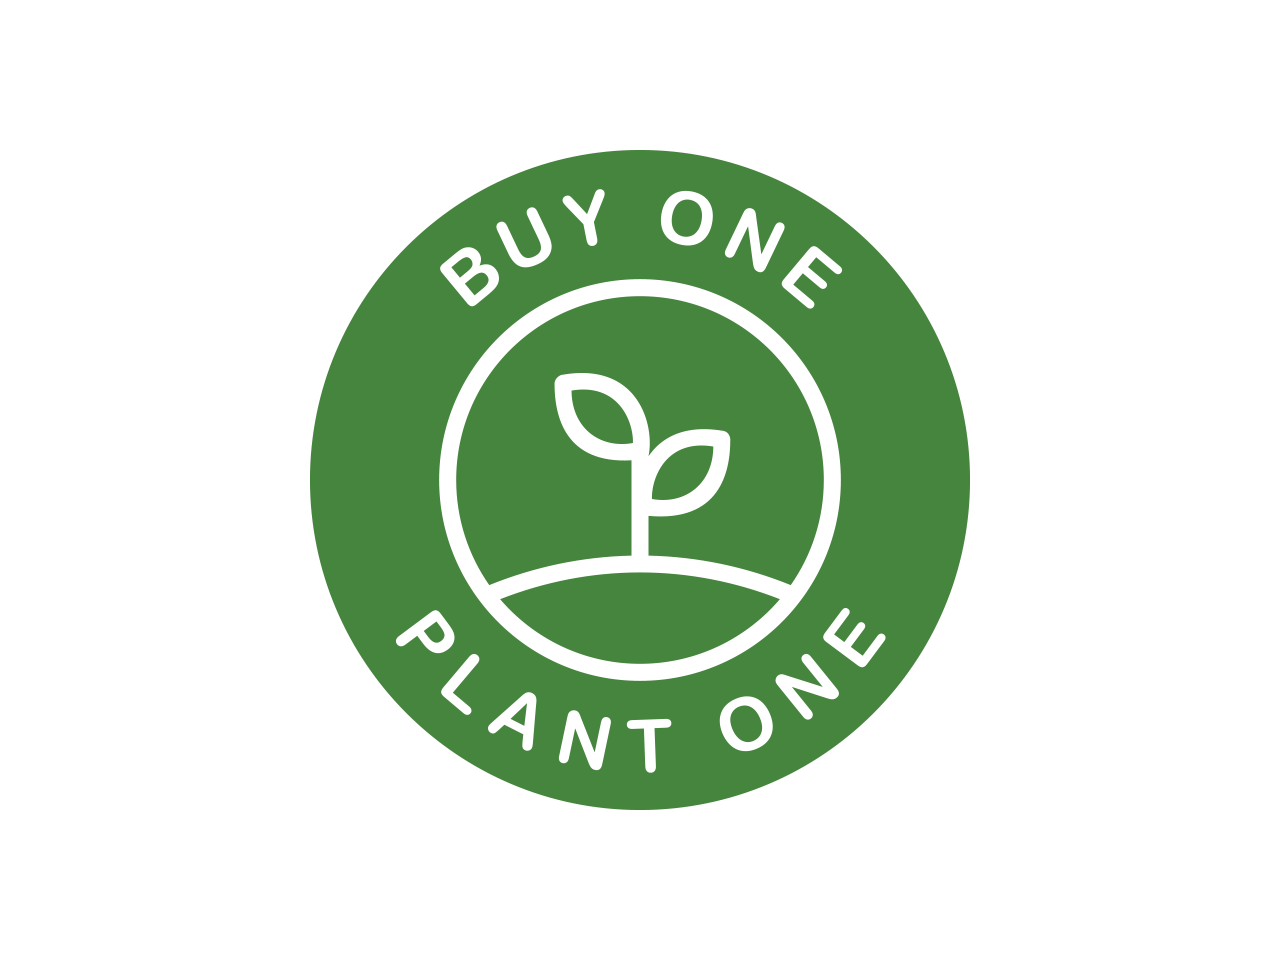 Buy One. Plant One.